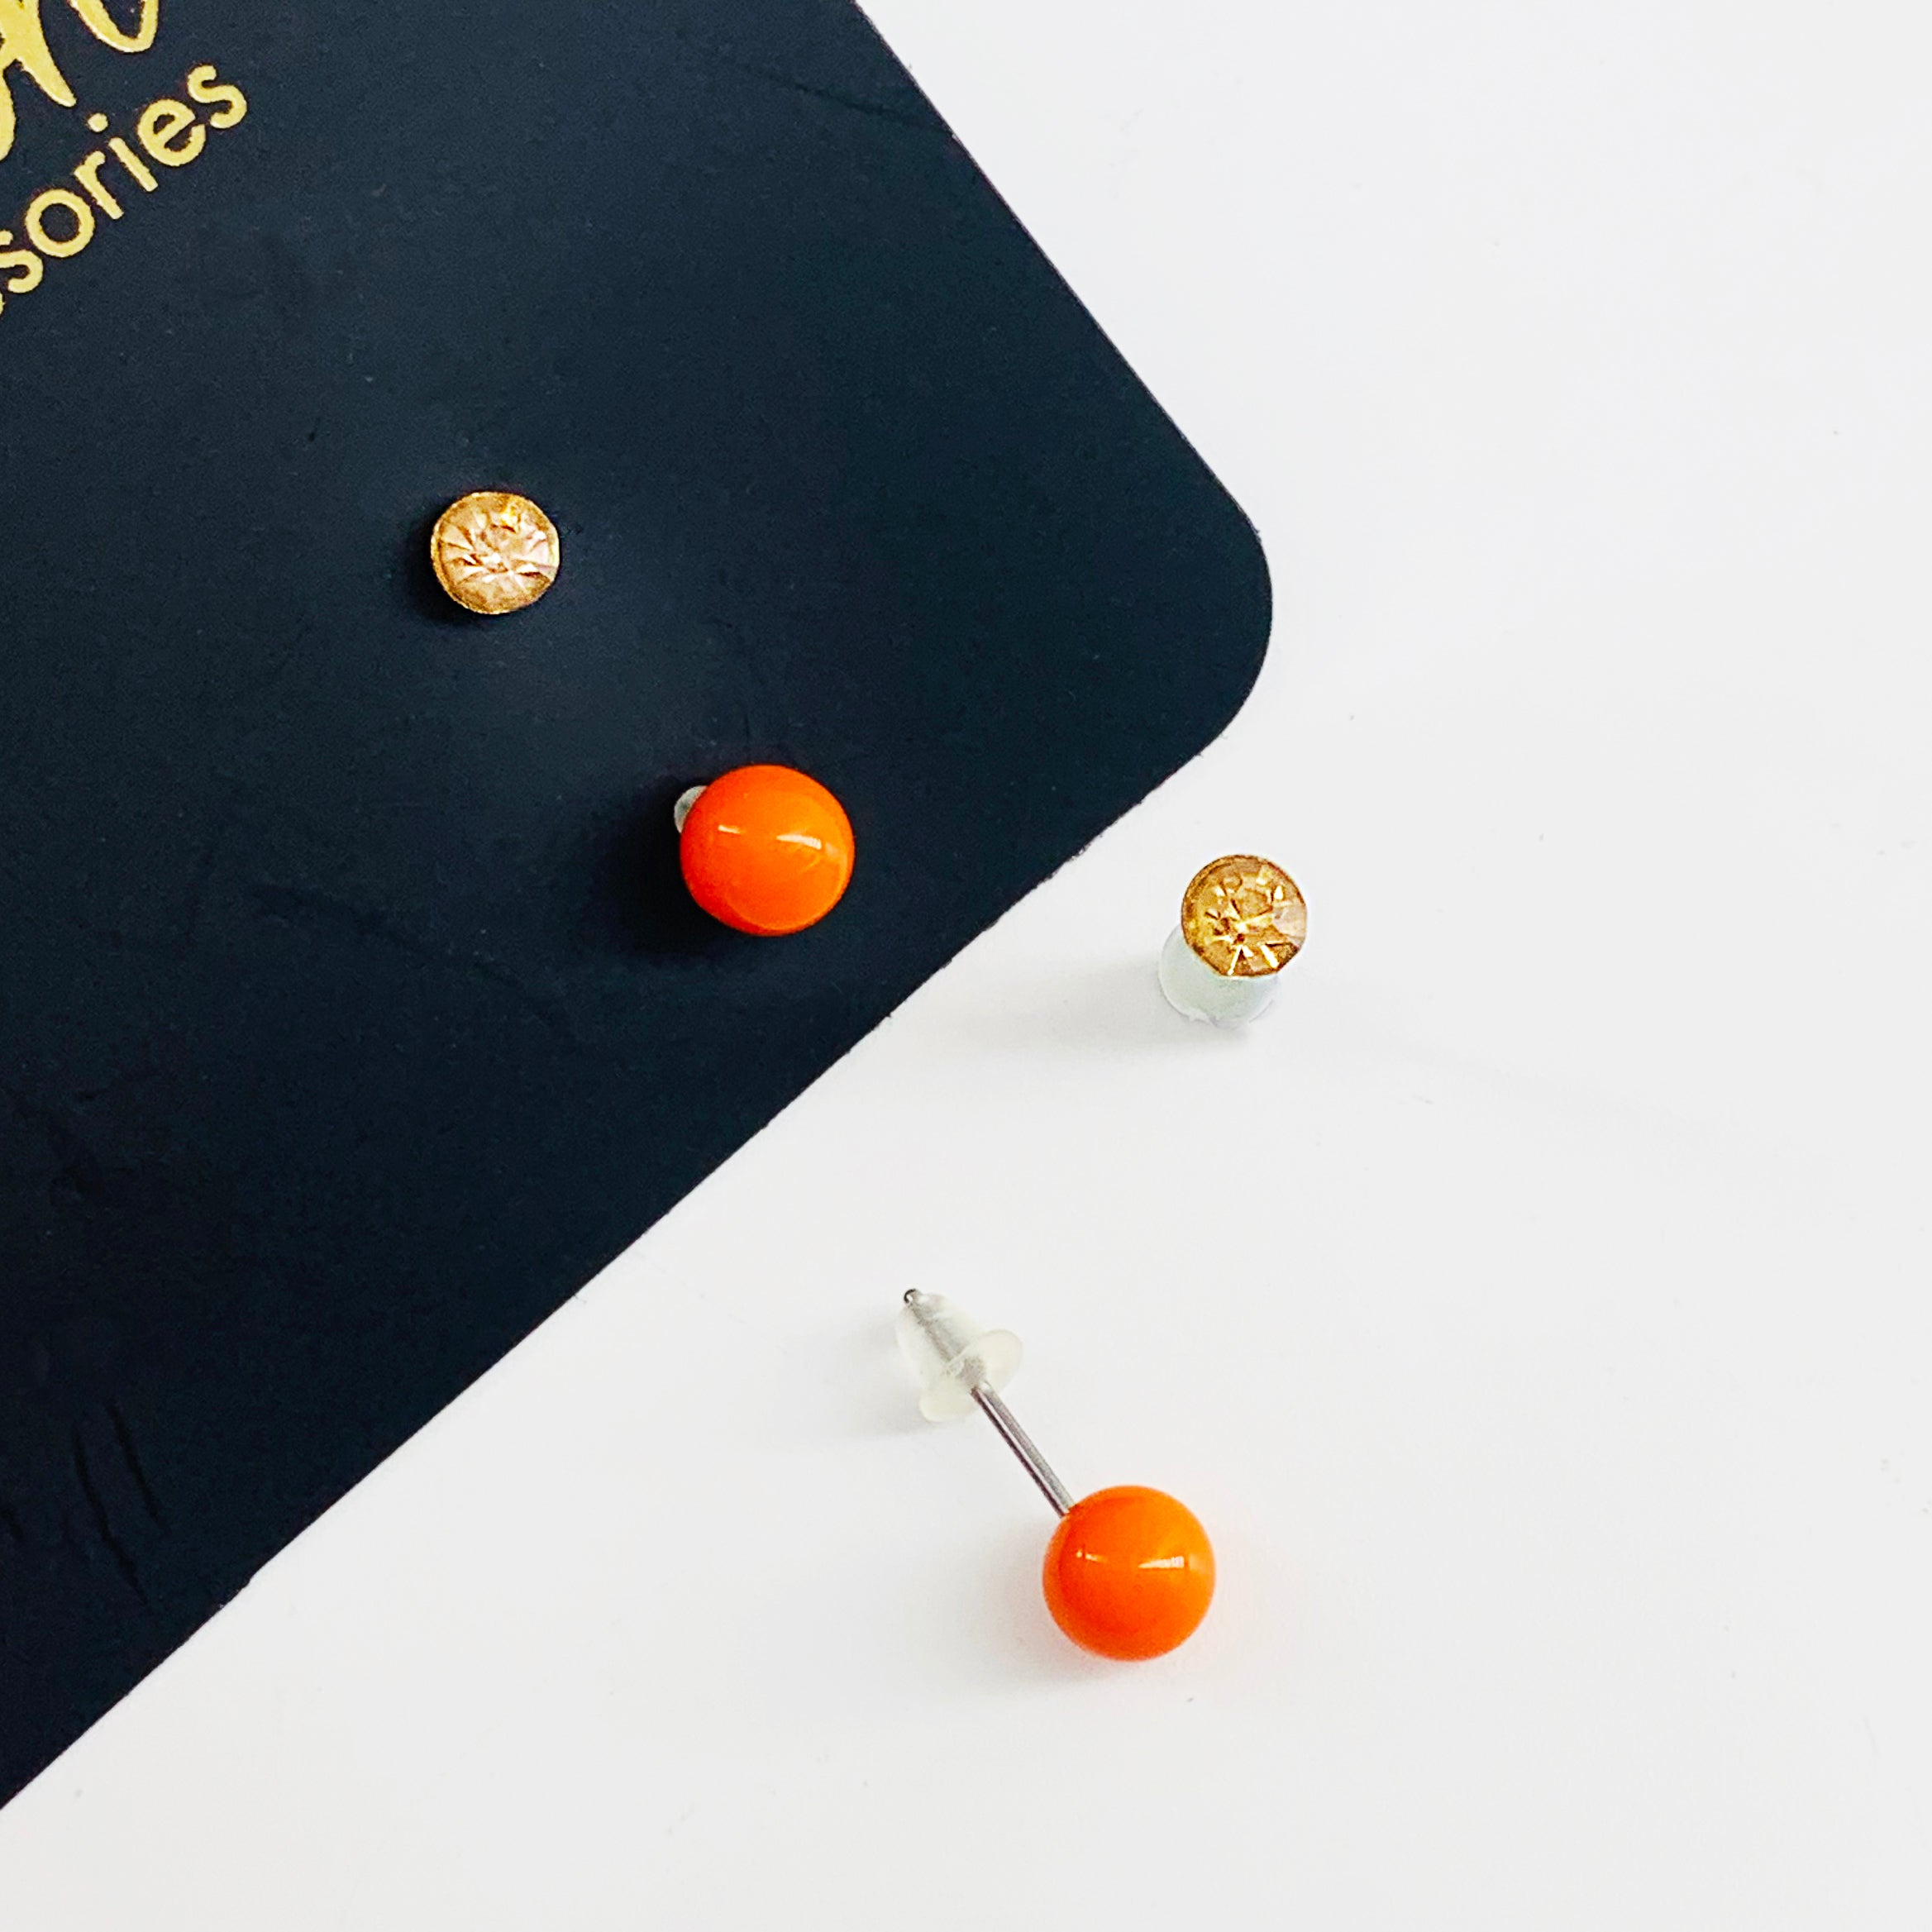 Small orange gem and ball earrings